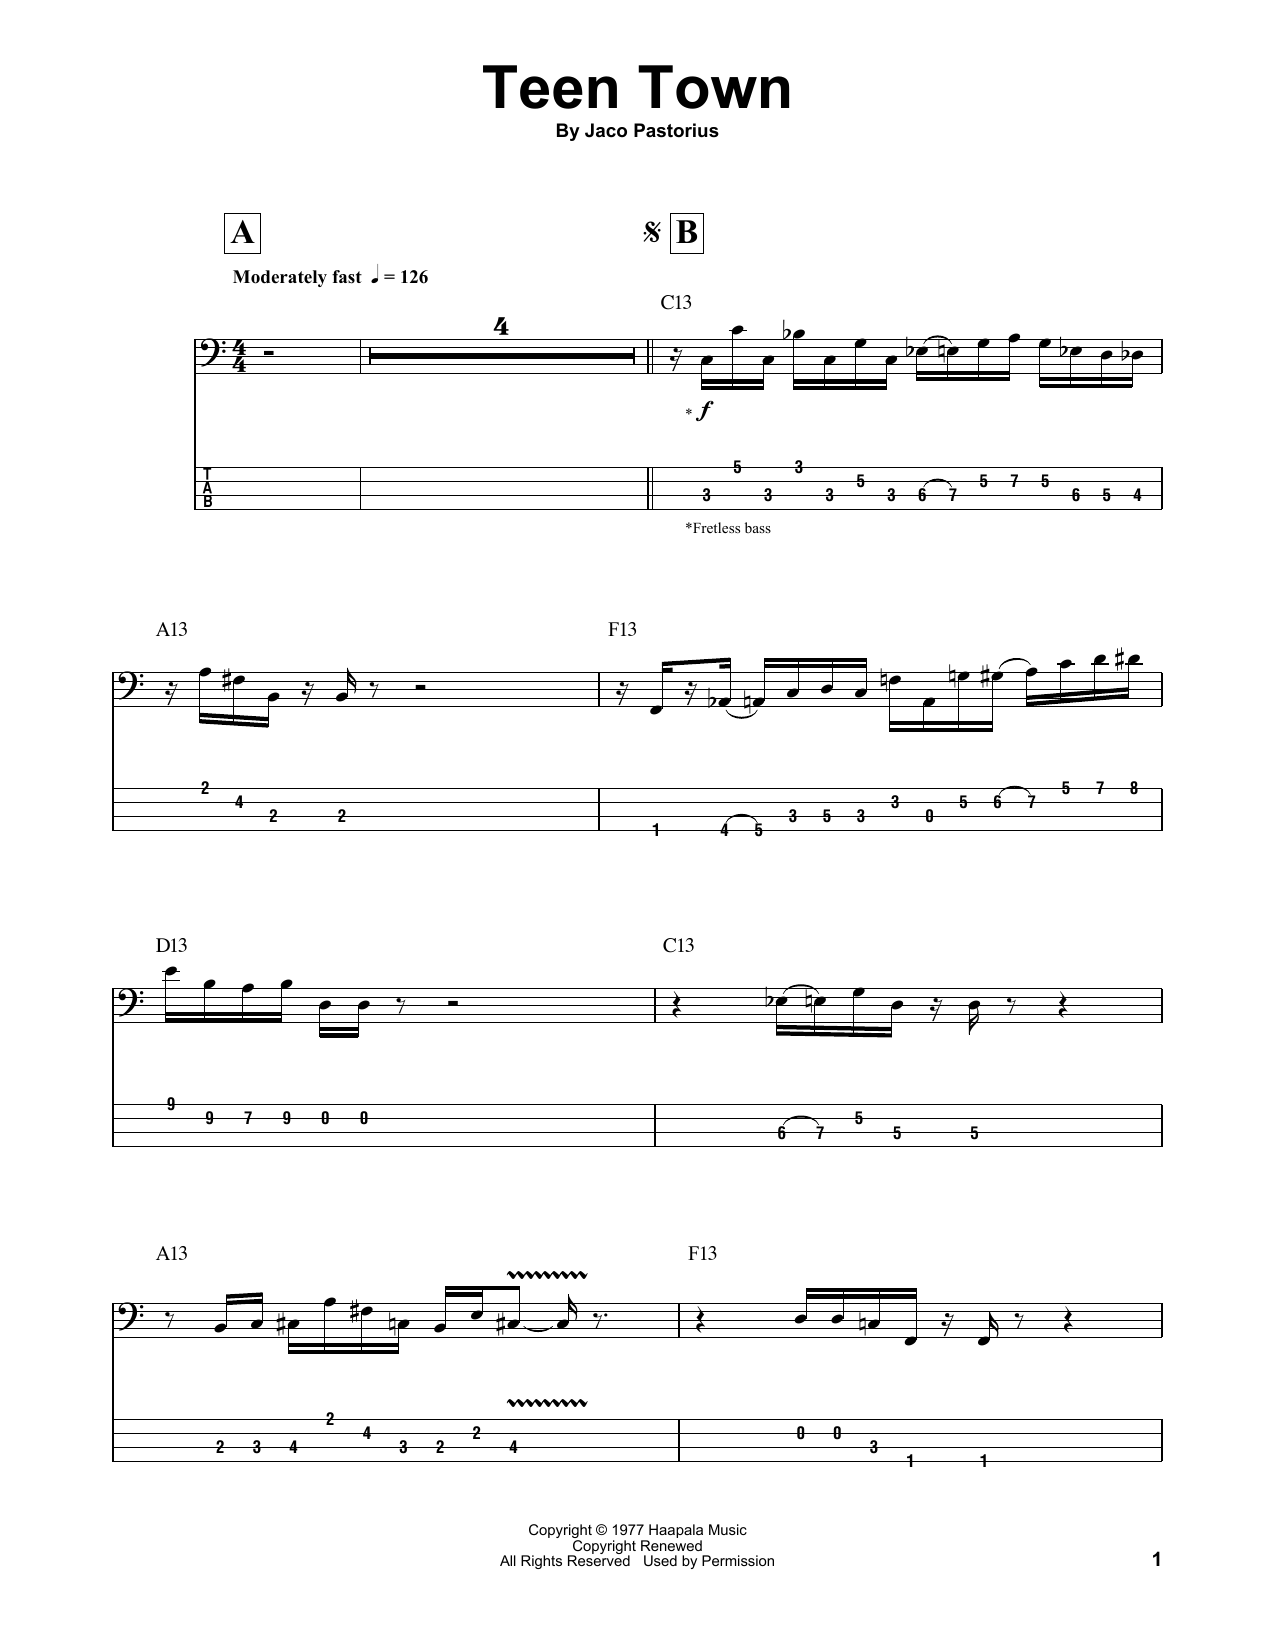 Tablature guitare Teen Town de Jaco Pastorius - Tablature Basse